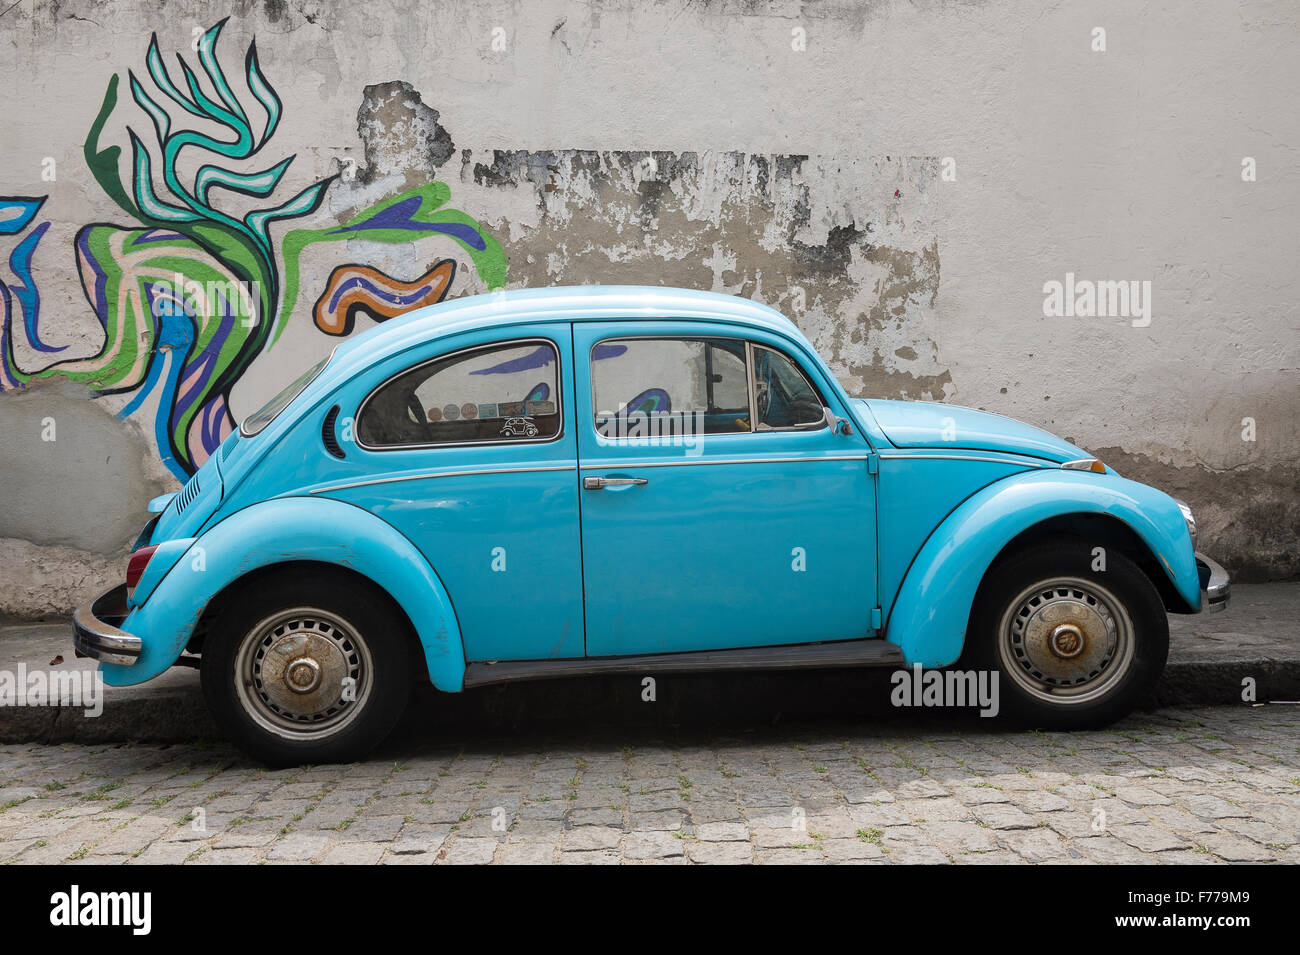 RIO DE JANEIRO, BRAZIL - OCTOBER 22, 2015: Classic bright blue Volkswagen Type 1 Beetle, known locally as a Fusca, - Stock Image